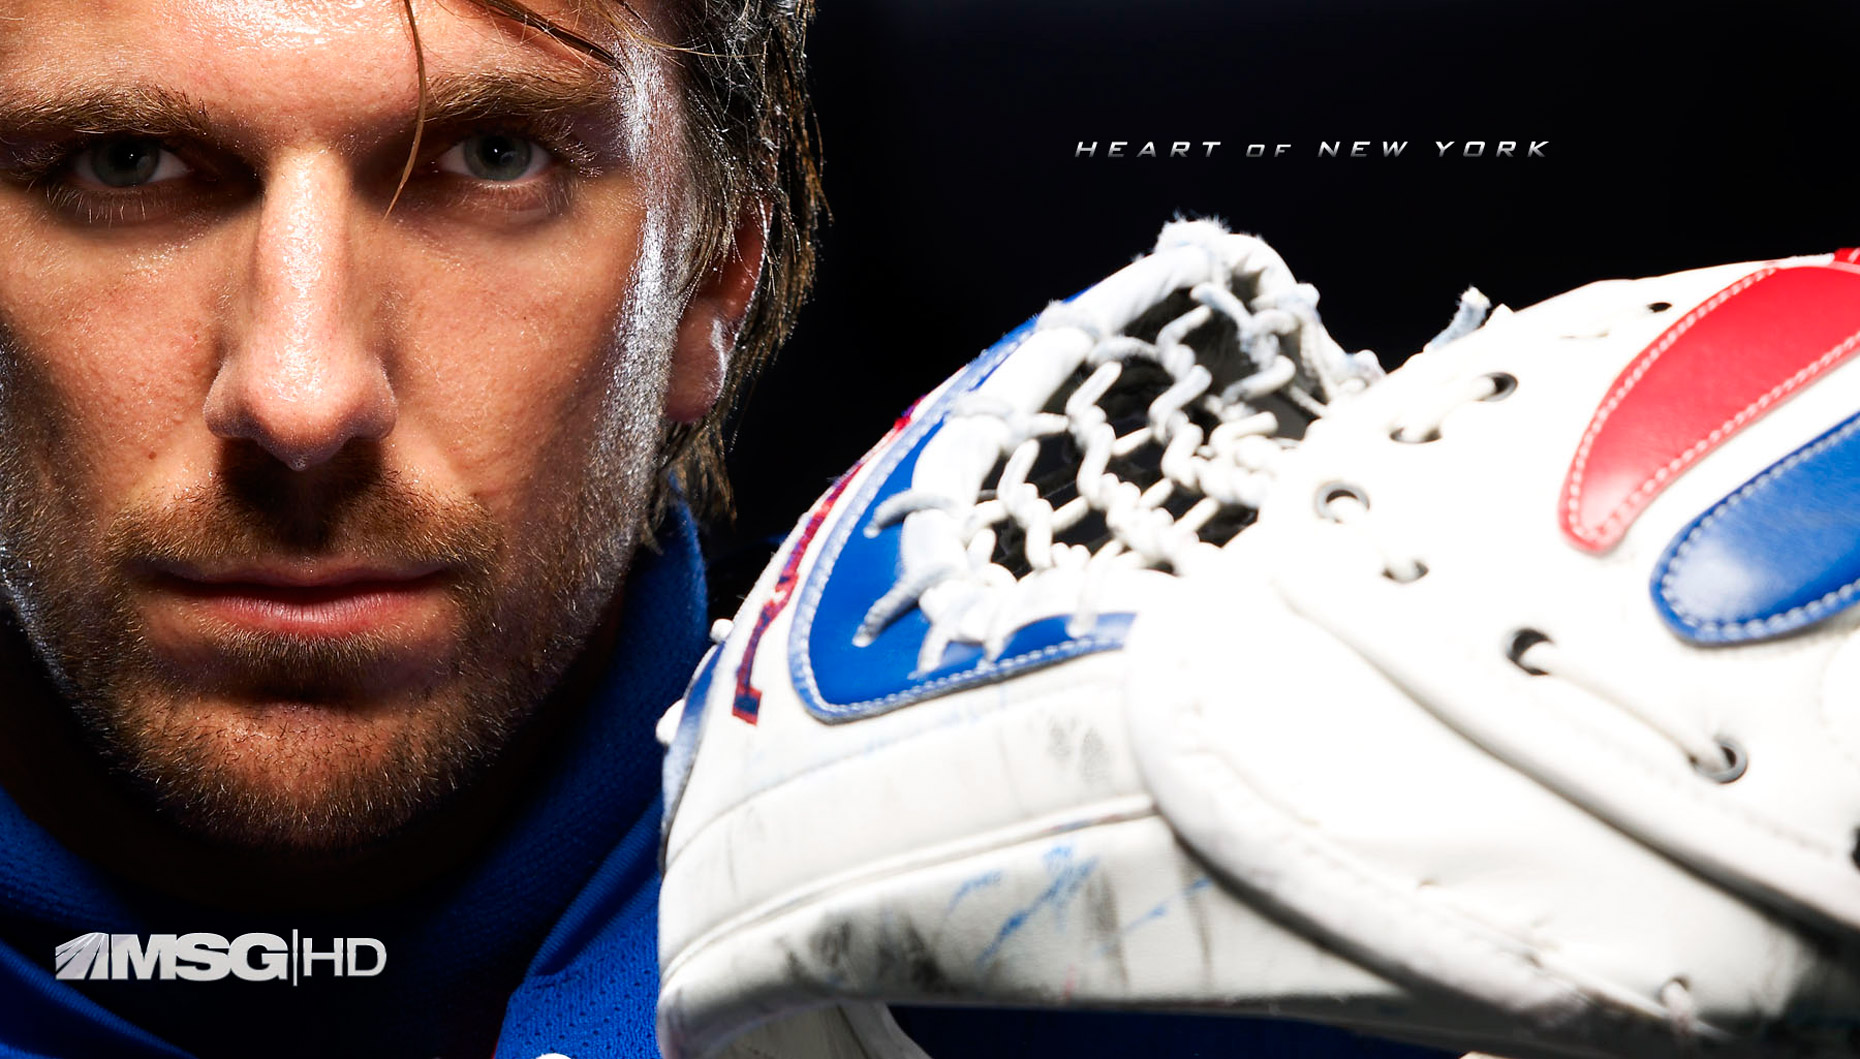 Henrik Lunqvist hockey goalie NY Rangers photo Monte Isom